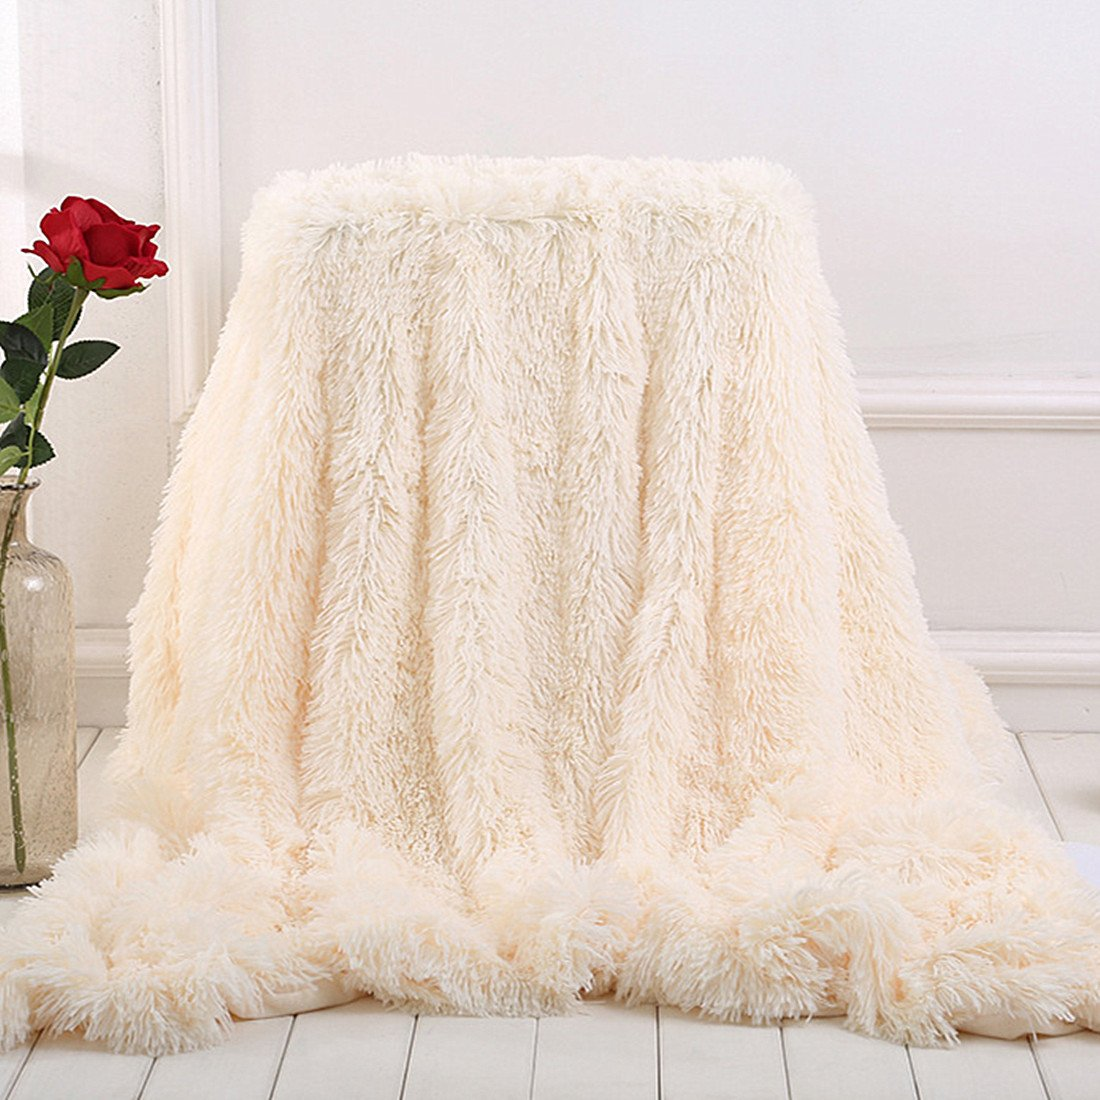 MYRU Plush Super Soft Blanket Bedding Sofa Cover Furry Fuzzy Fur Warm Throw Qulit Cozy Couch Blanket for Winter (51x63, Black)